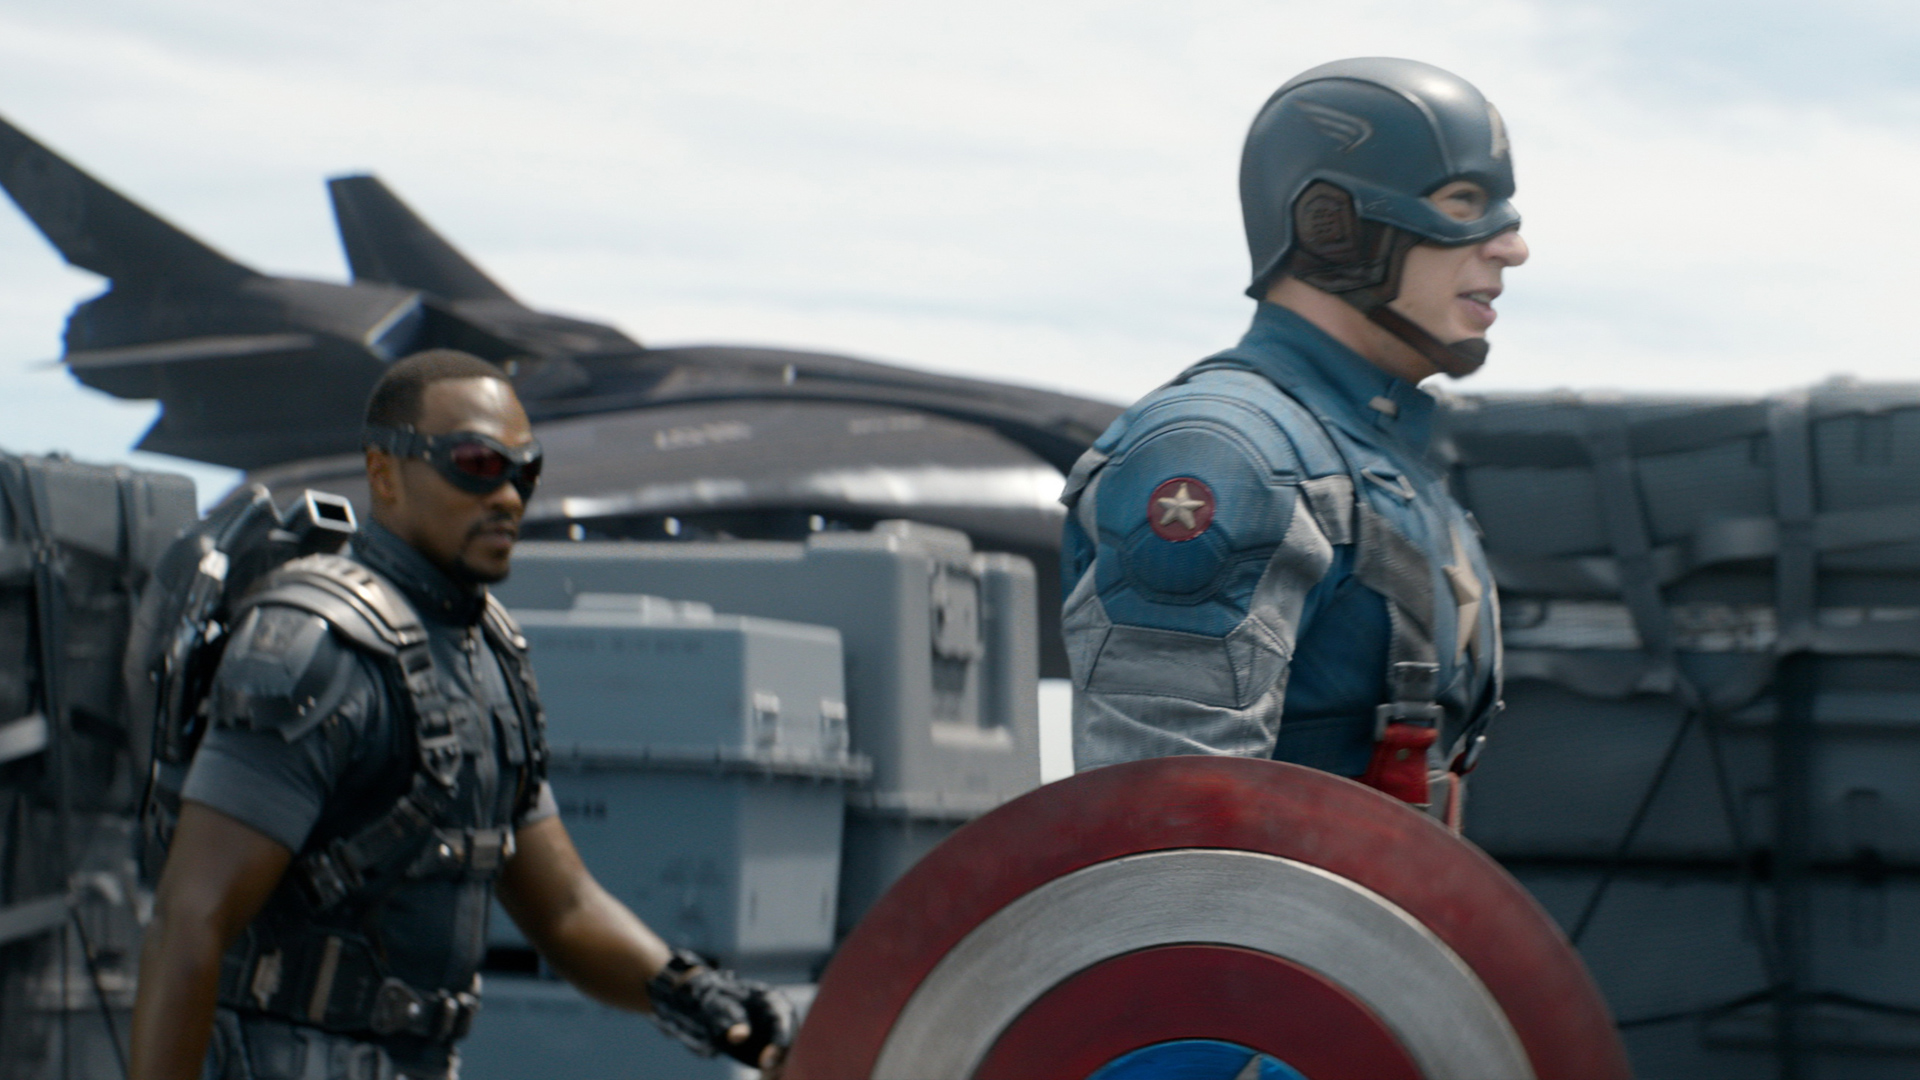 Anthony-Mackie-as-The-Falcon-and-Chris-Evans-as-Steve-Rogers-Captain-America-wallpaper-wpc9002289